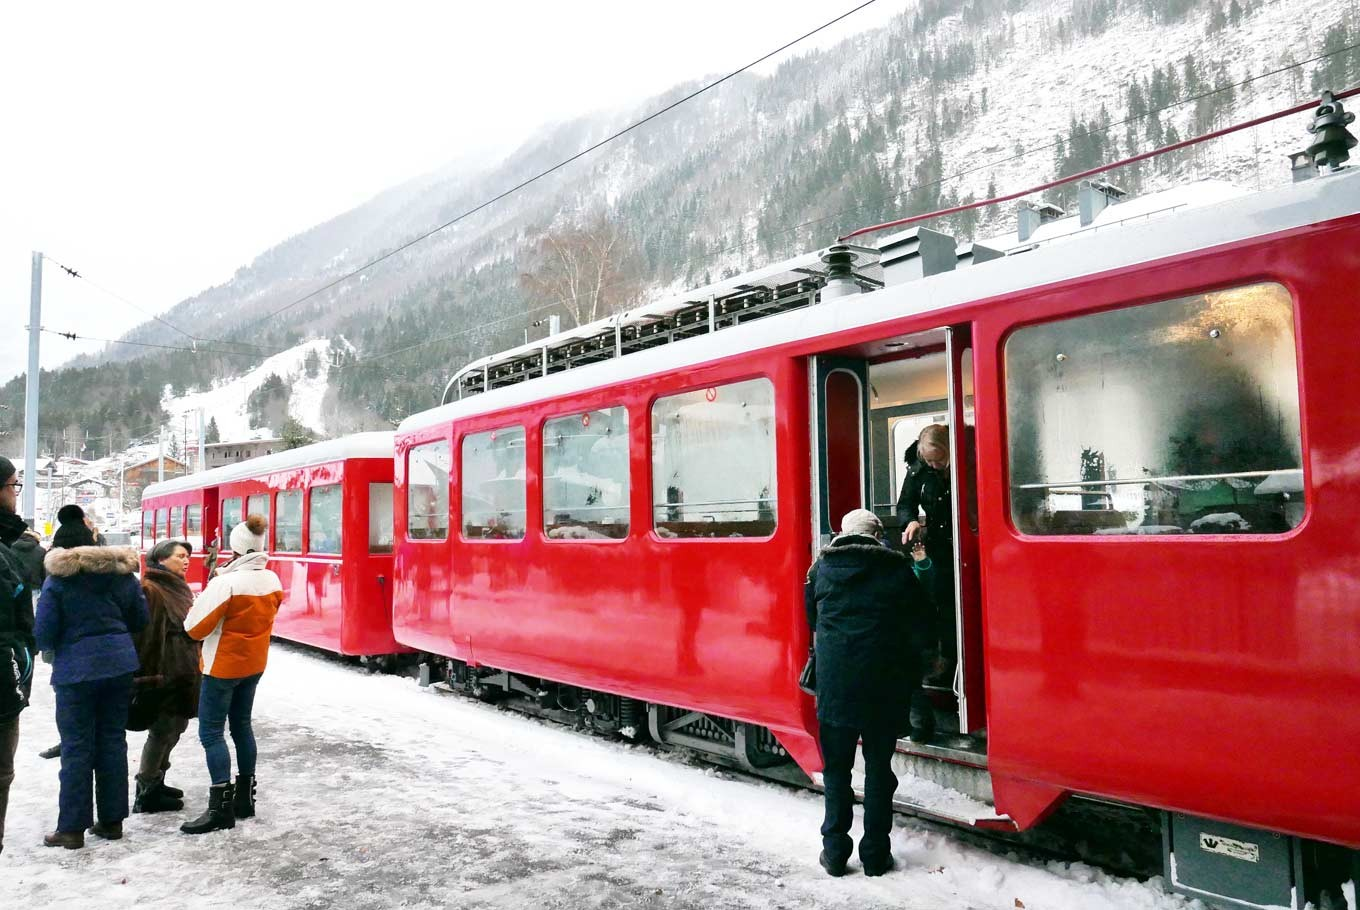 The famous Red Train built over 100 years ago, ready to take visitors up to Montenvers to enjoy the magnificent view of the Mer de Glace (Sea of Ice).